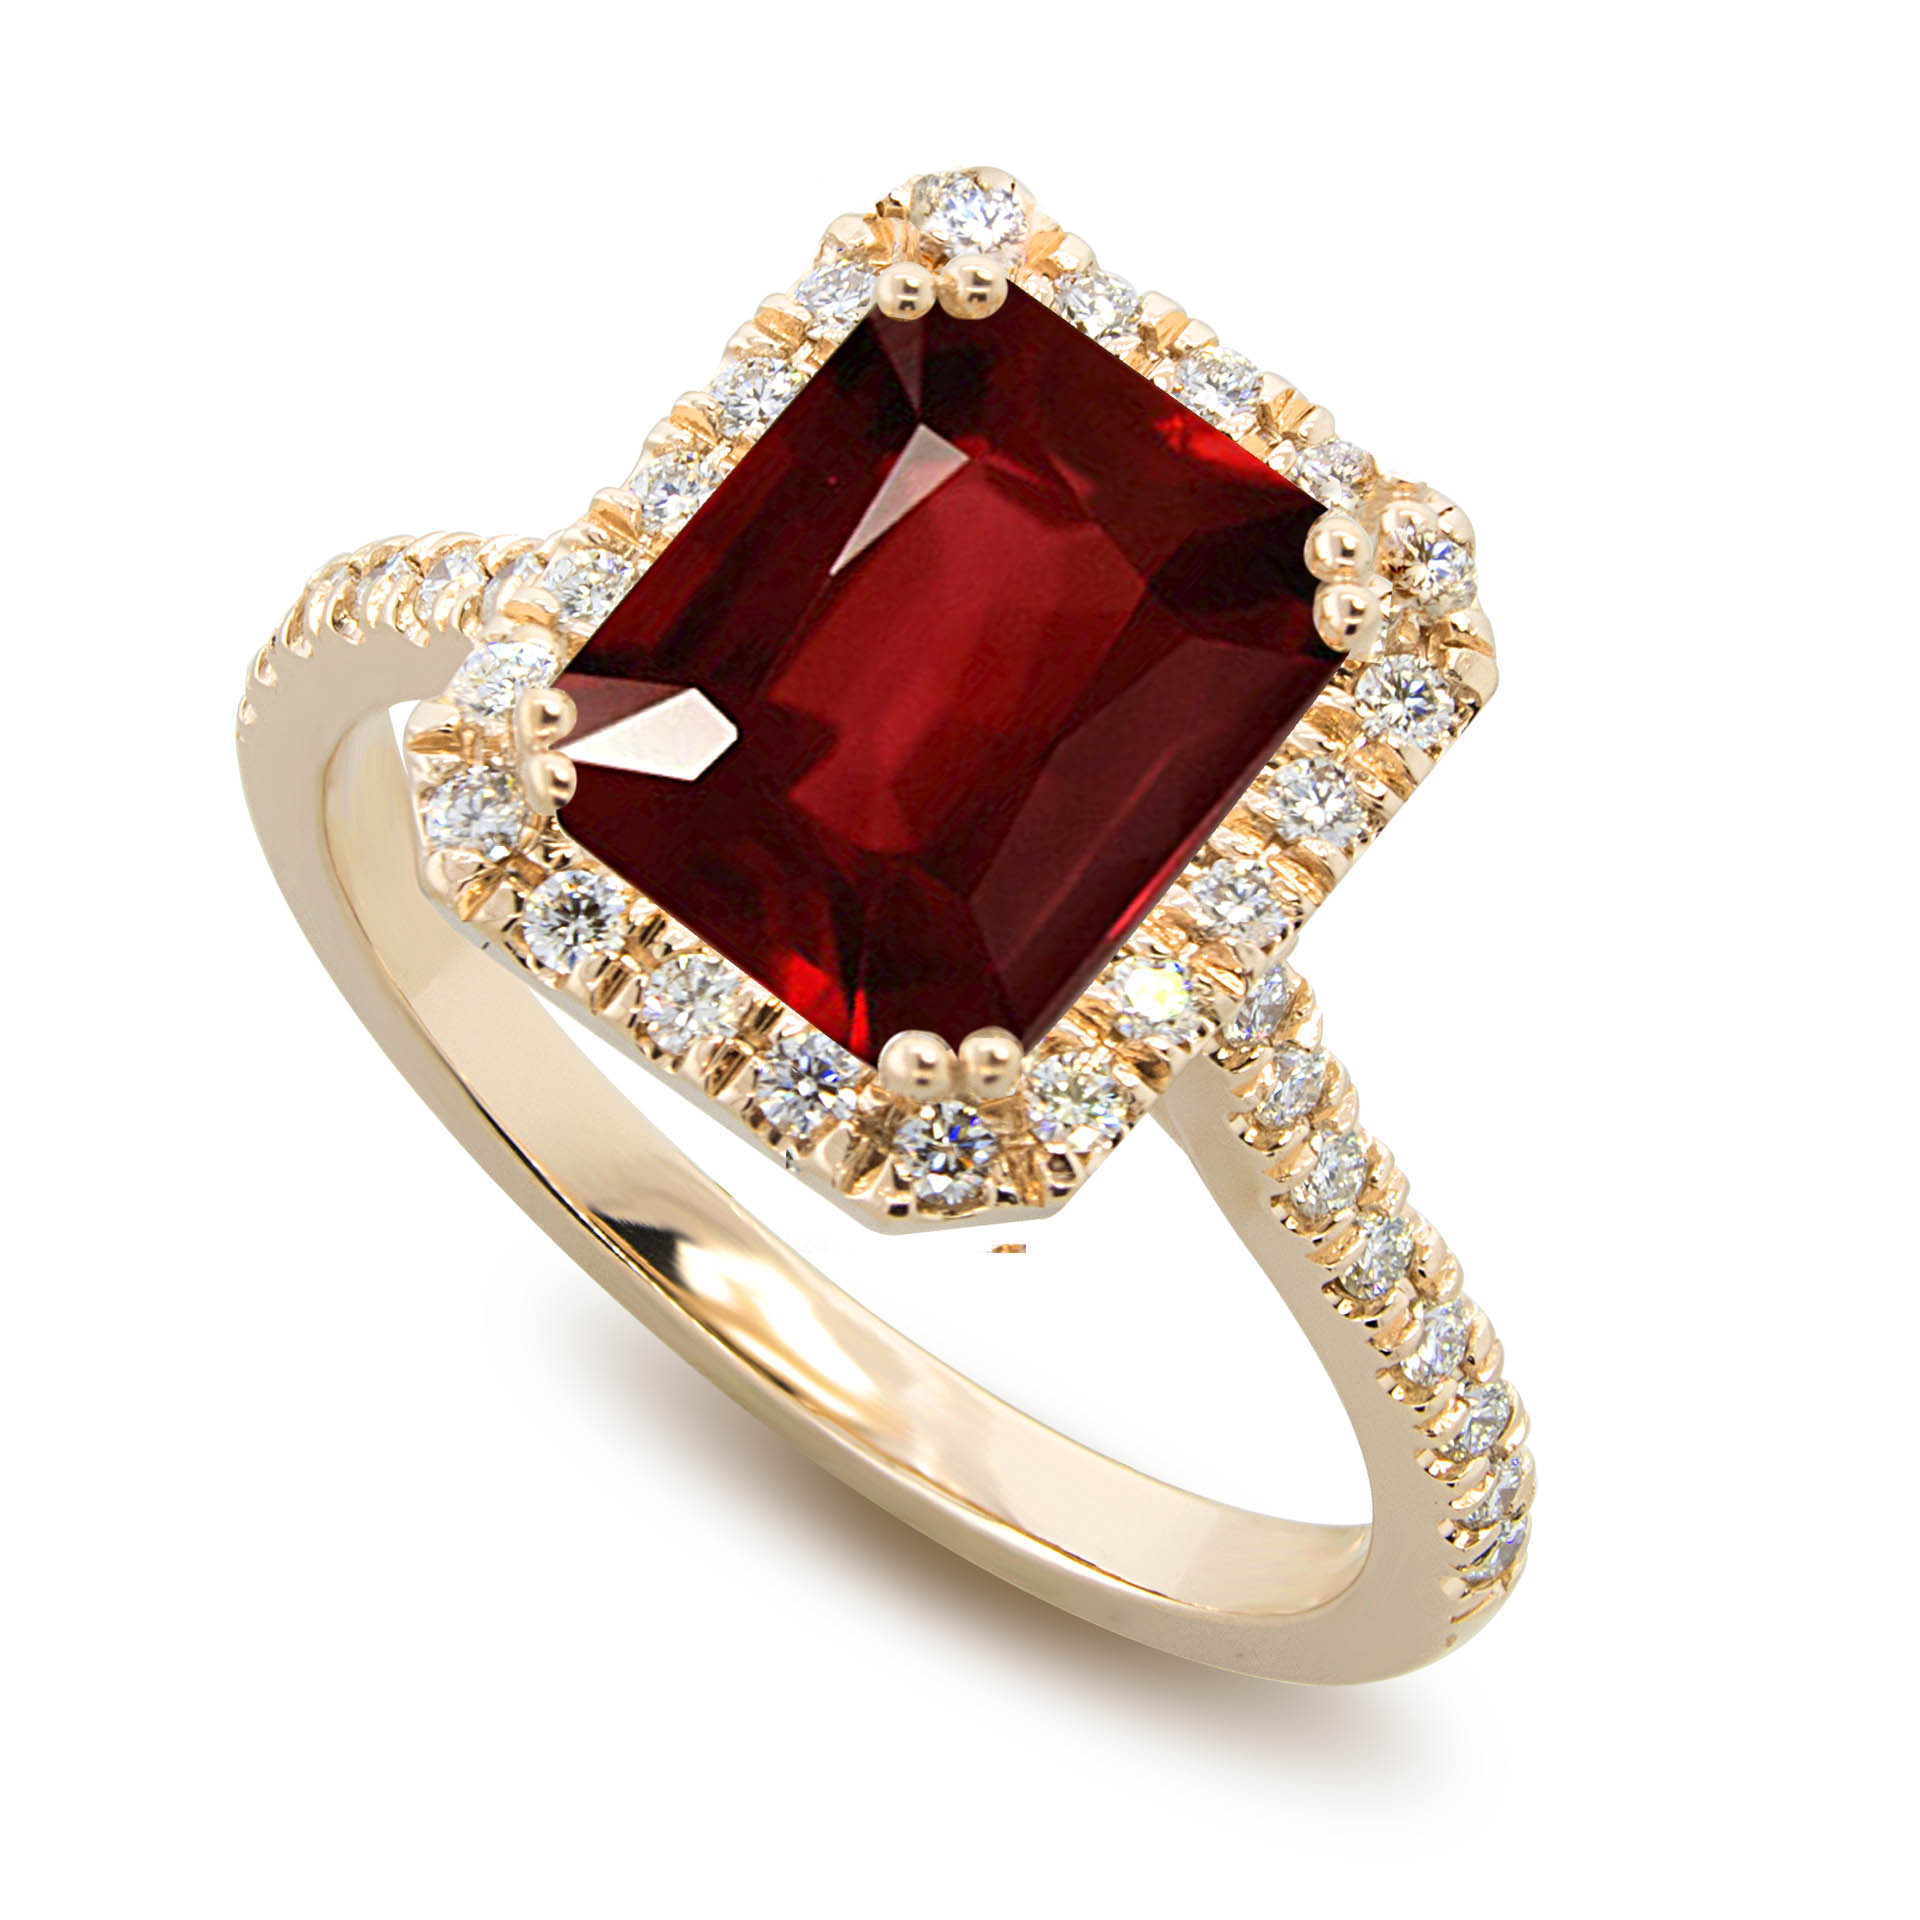 8132959670d8b Genuine Burma Ruby Halo Engagement Ring, Gold or Platinum